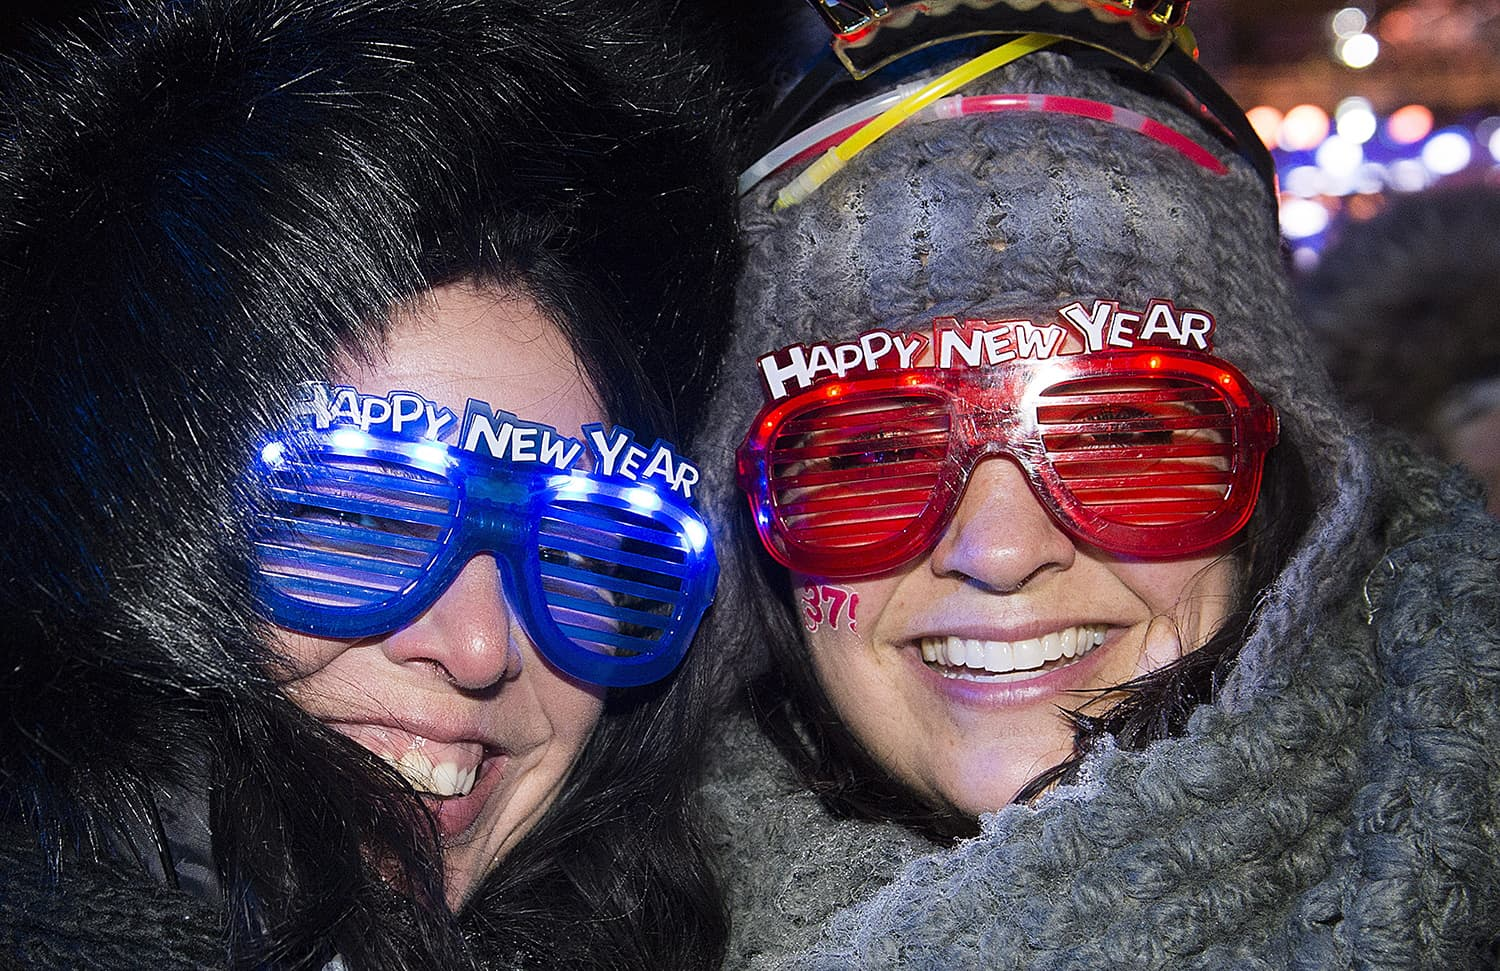 Two women smile during New Year's Eve celebrations in Montreal, Canada, Sunday, Dec. 31, 2017. — AP